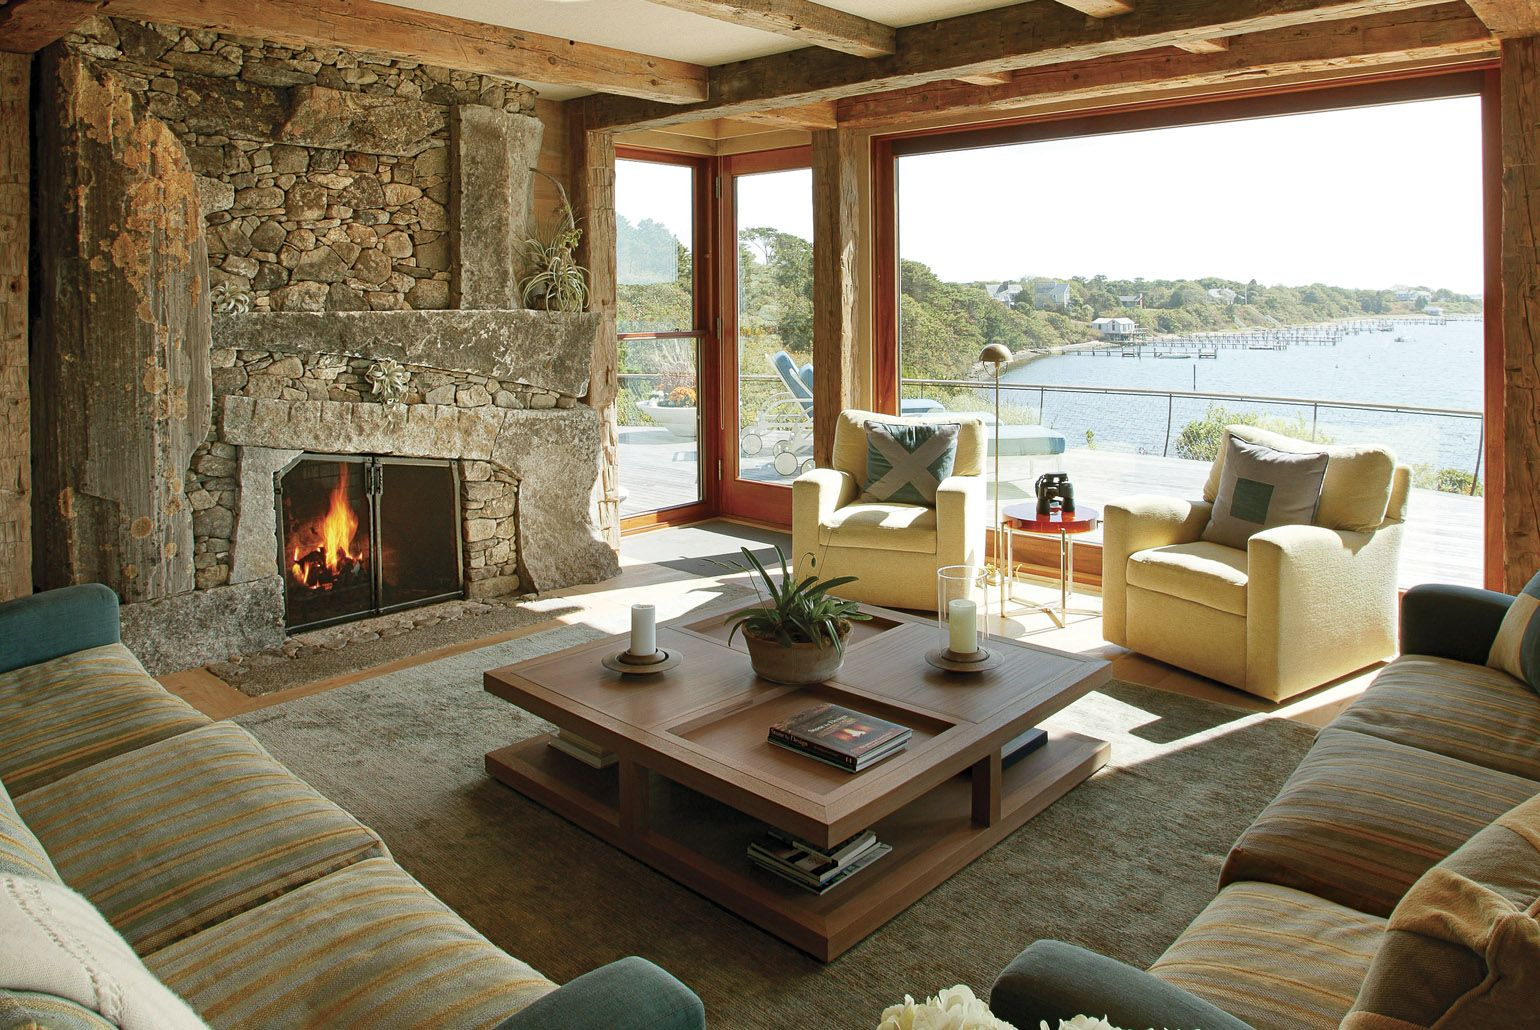 Fireplace design and construction by Lew French